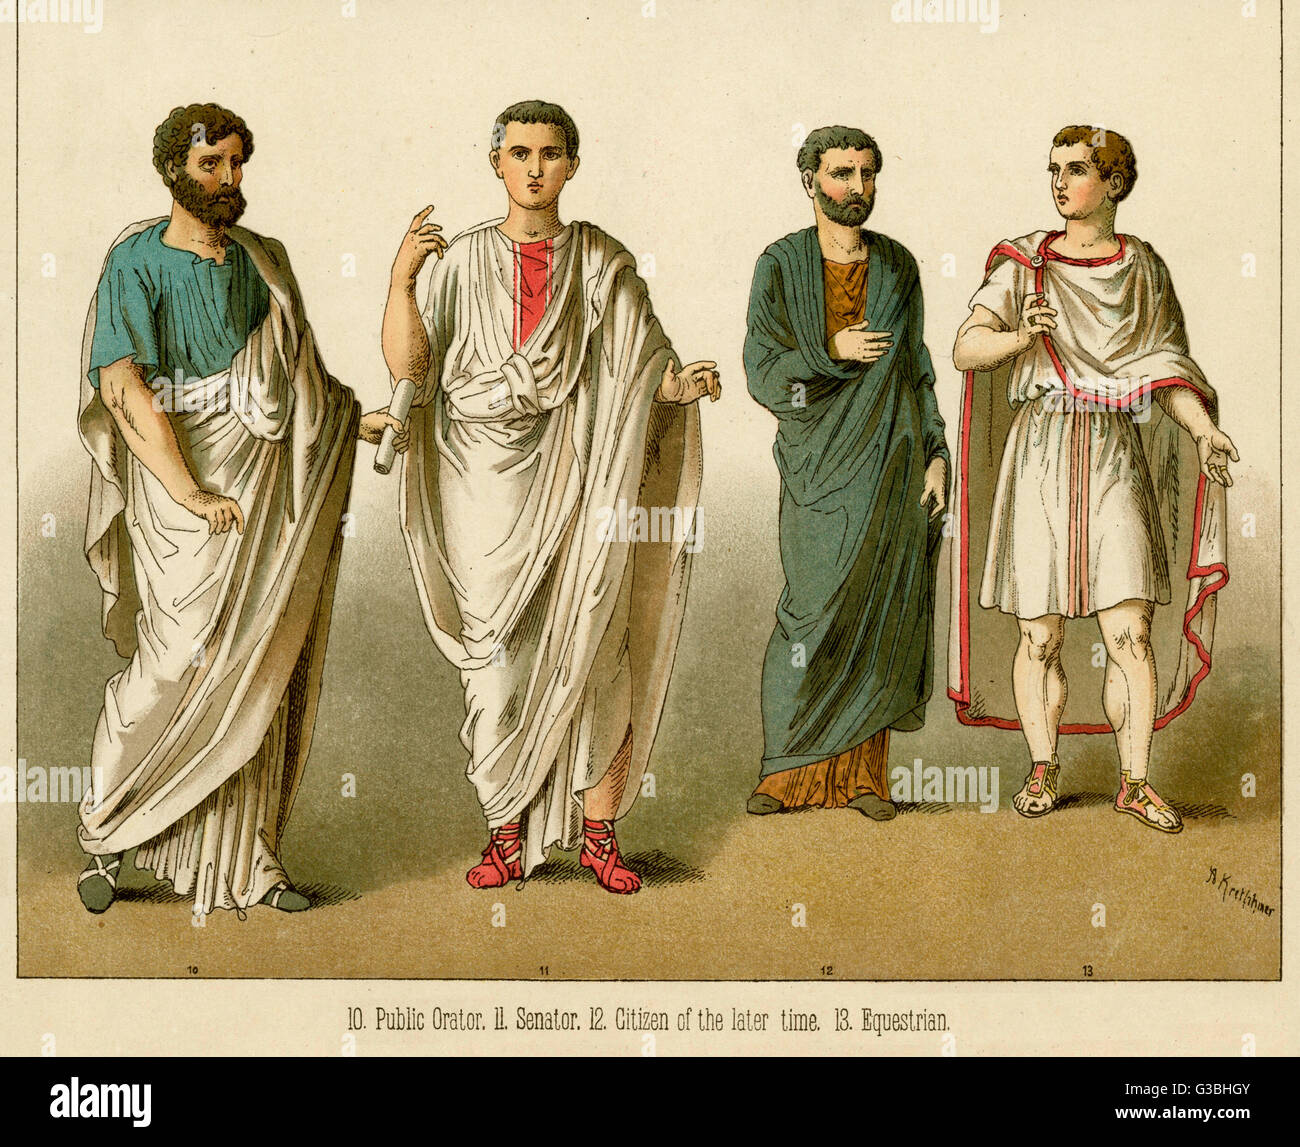 Ancient Roman Clothing For Men: Ancient Rome Clothing Stock Photos & Ancient Rome Clothing